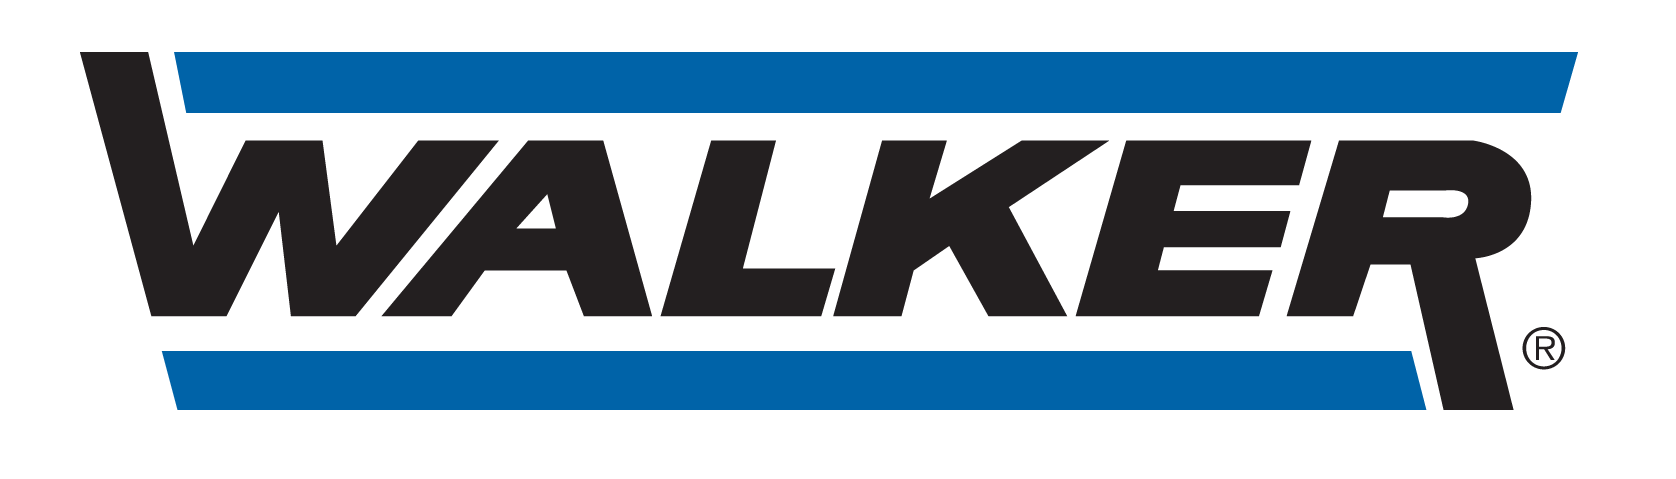 TEAM AUTOMOBILES - logo Walker